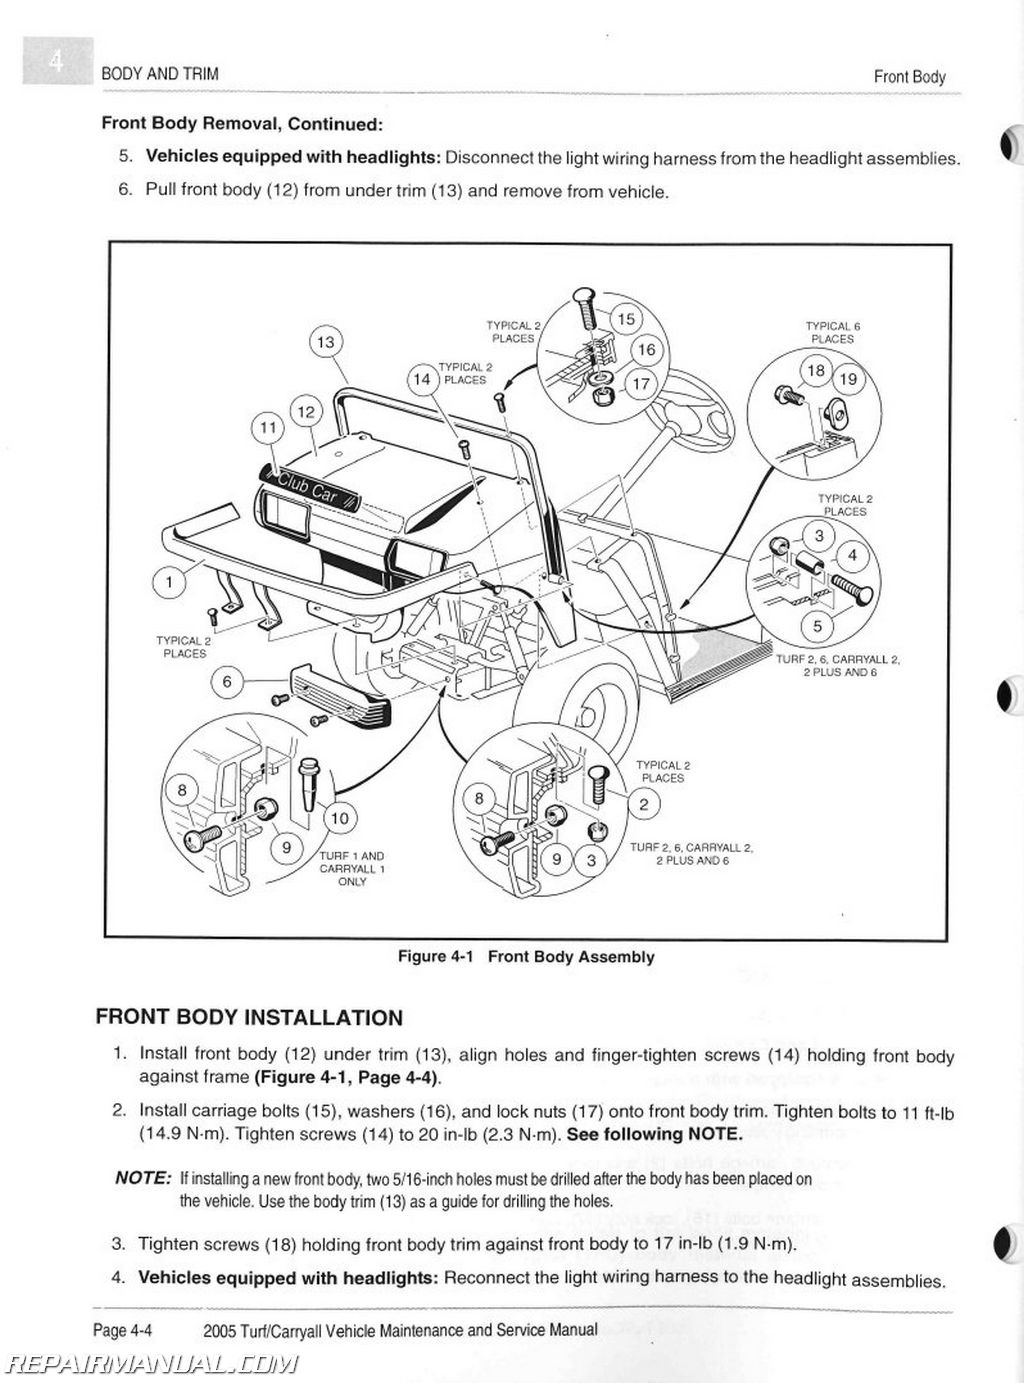 Club Car Carryall 1 Wiring Diagram Turf Books Of 6 Get Free Image About